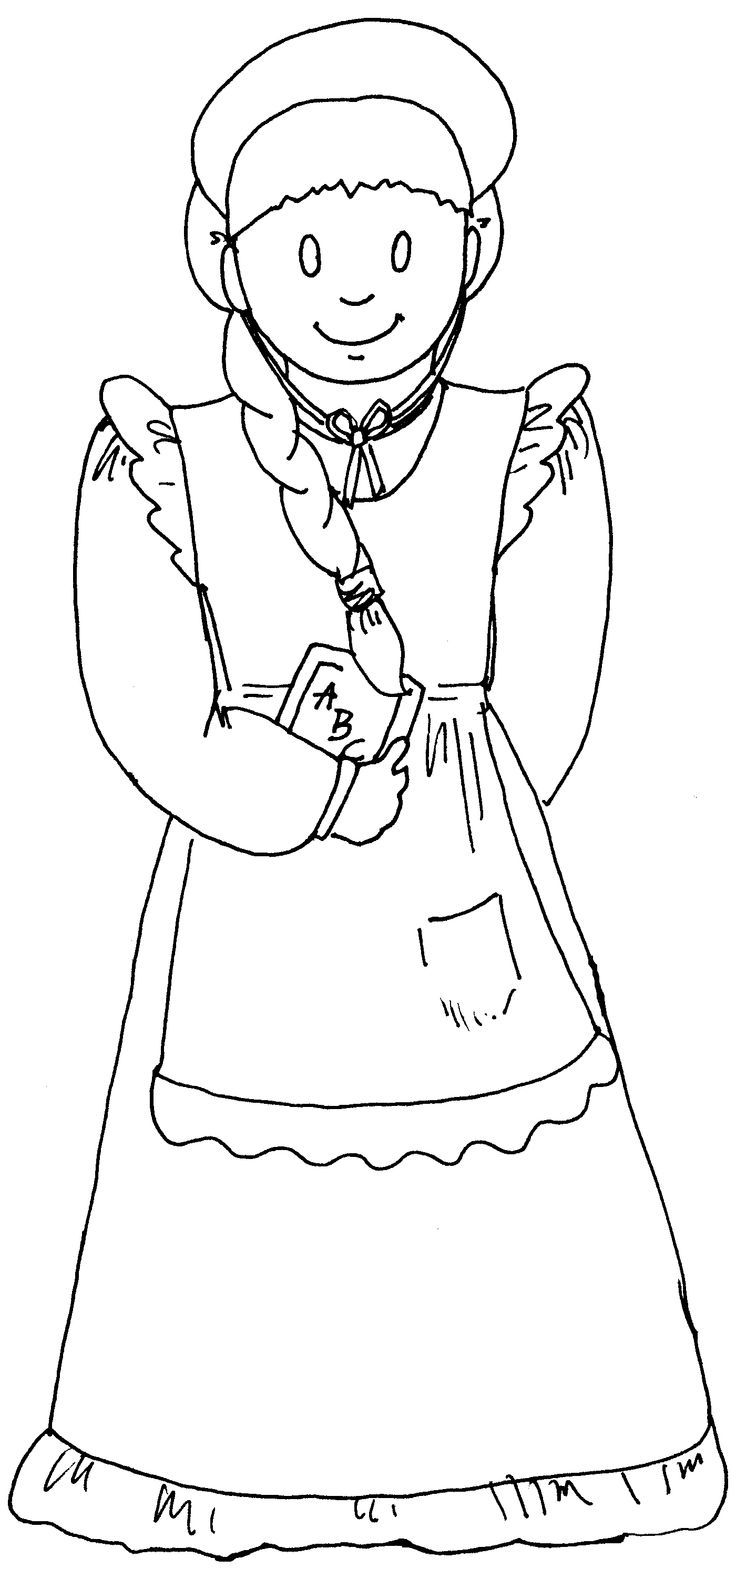 prioneer coloring pages - photo#5